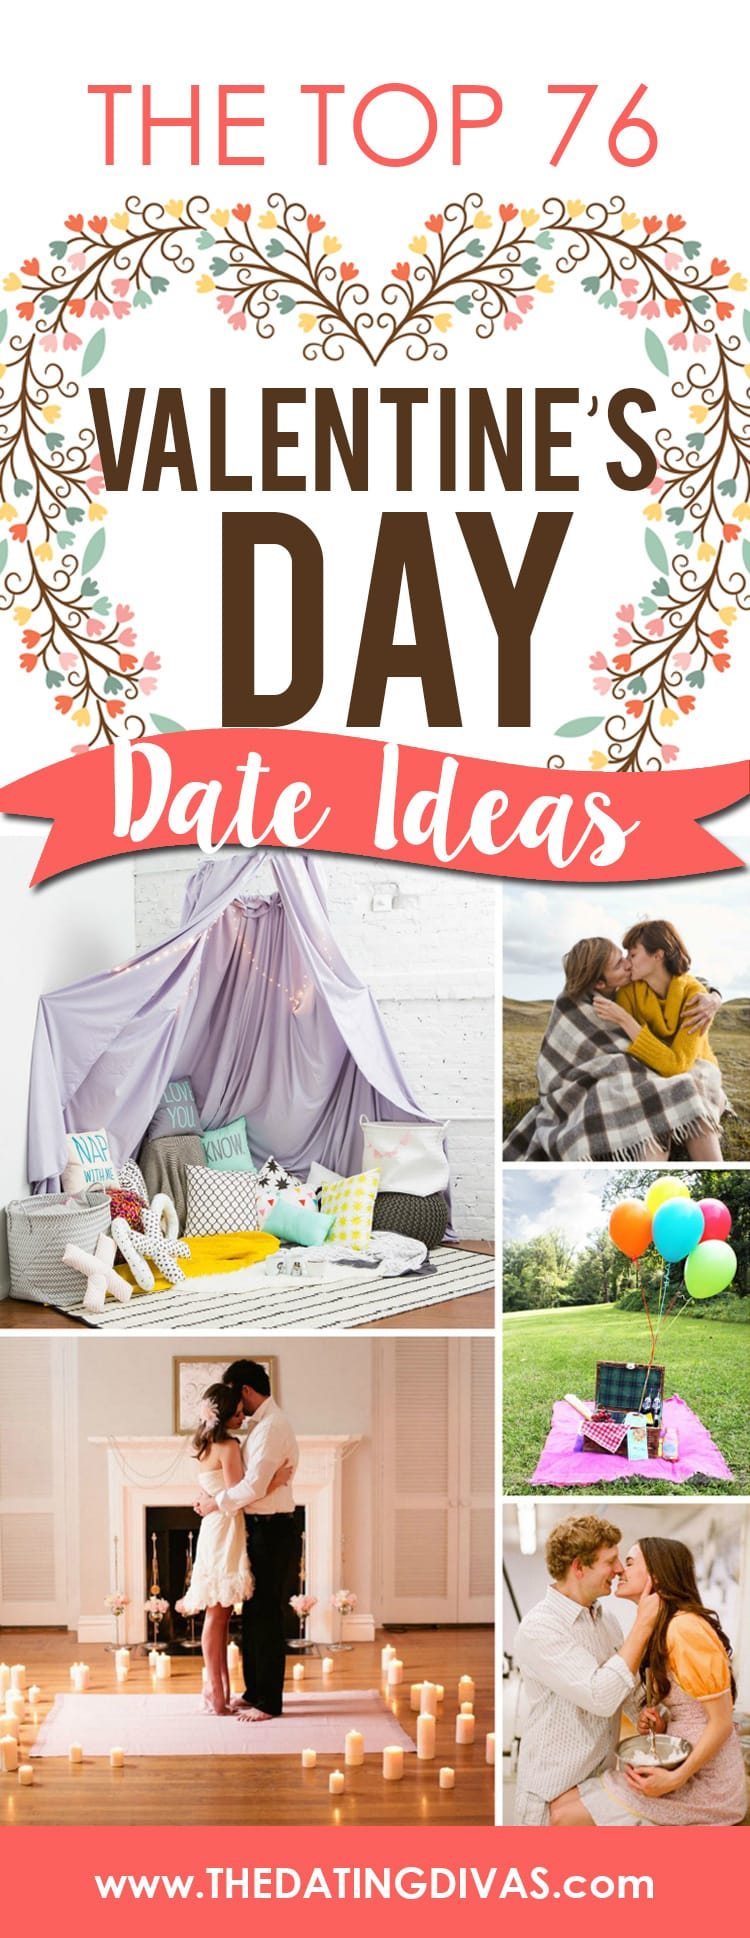 Valentines day date ideas